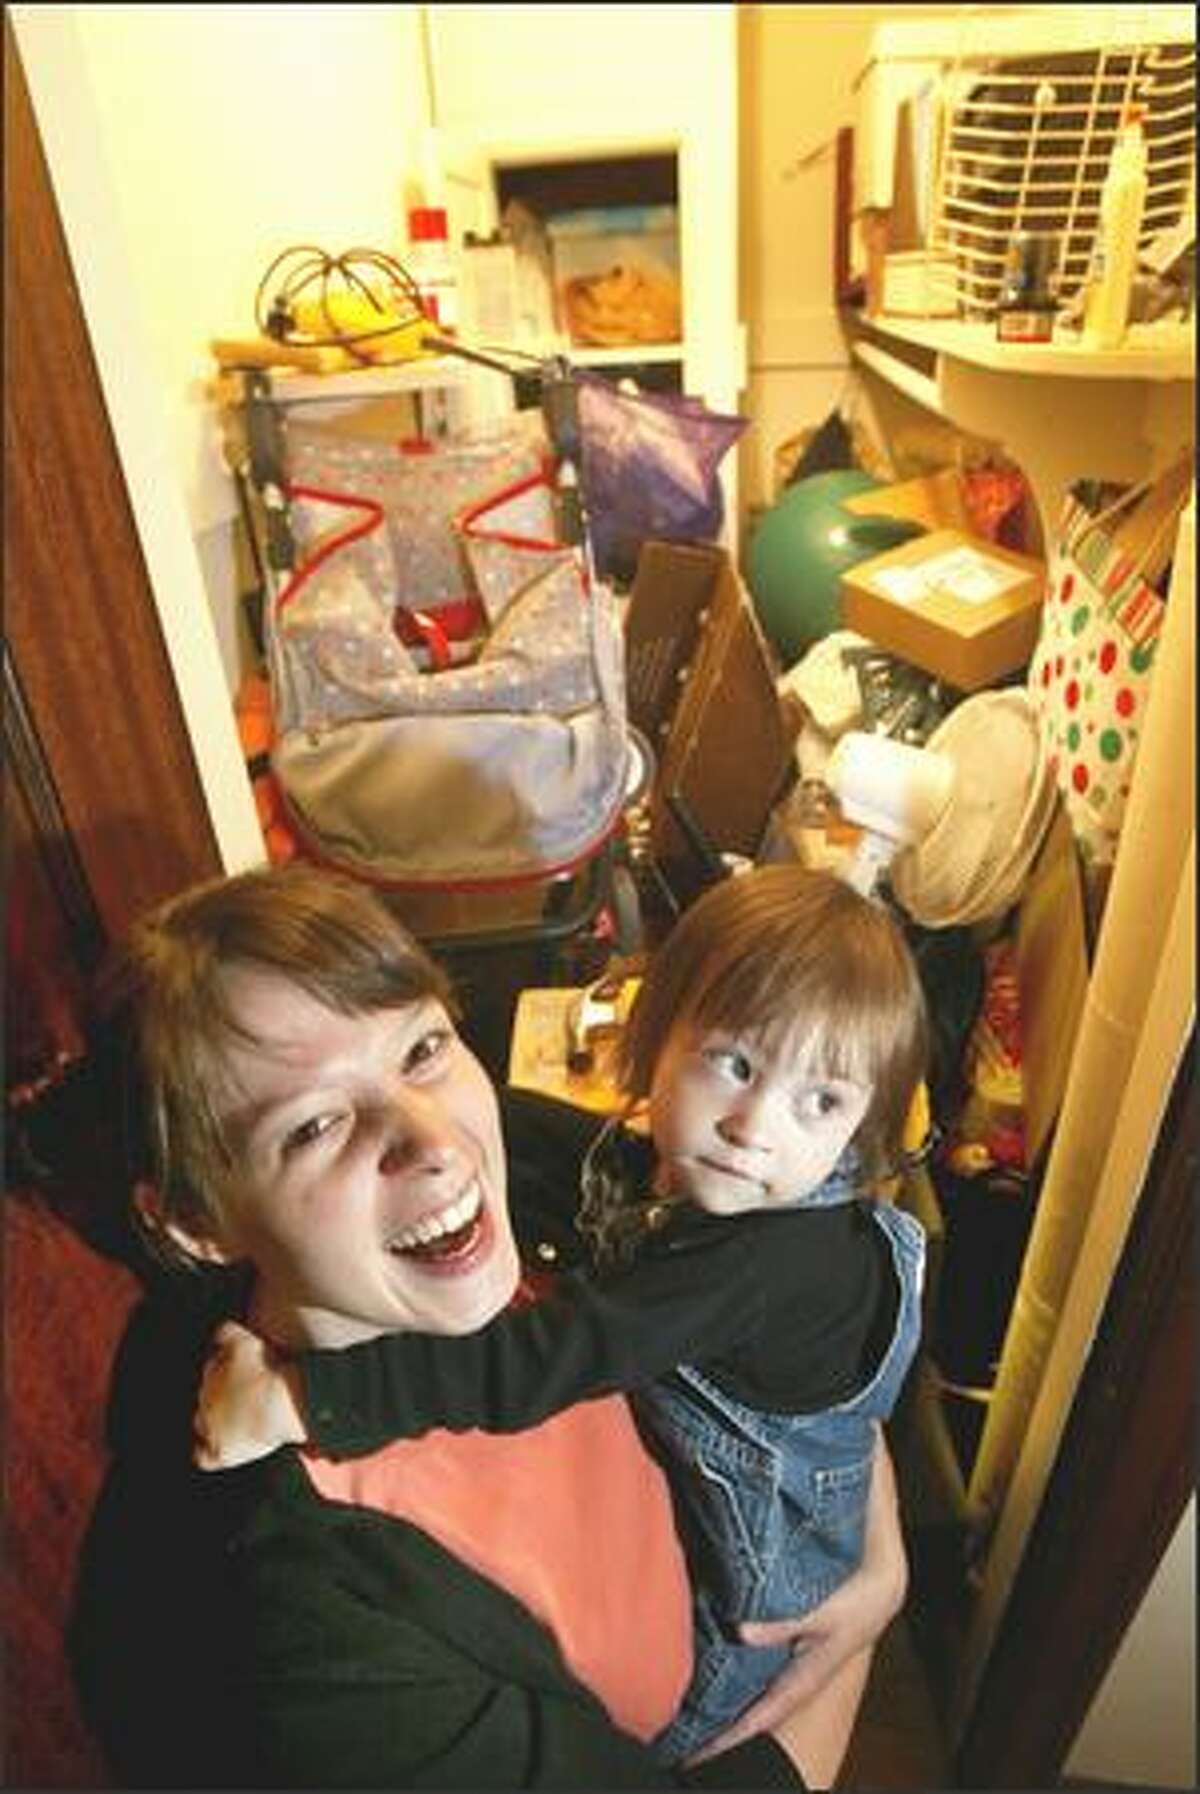 The busier Courtney Hudak's life gets, the more clutter she amasses in her 'scary closet.' Winning the contest is a big relief to this full-time student, part-time worker and all-the-time mother. She's ready to change her ways and spend more time with her daughter, Eva, who is 2.